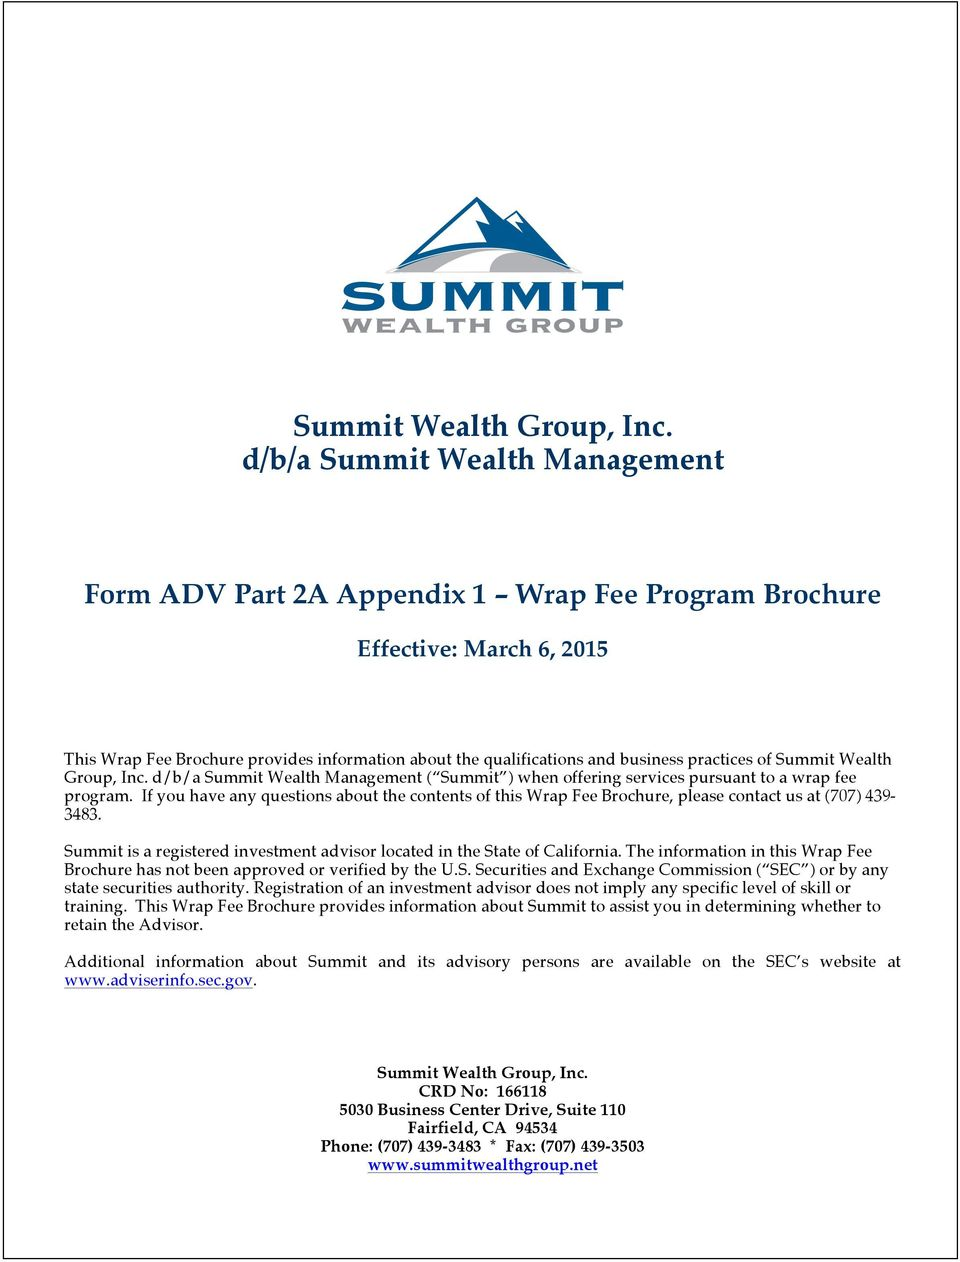 If you have any questions about the contents of this Wrap Fee Brochure, please contact us at (707) 439-3483. Summit is a registered investment advisor located in the State of California.